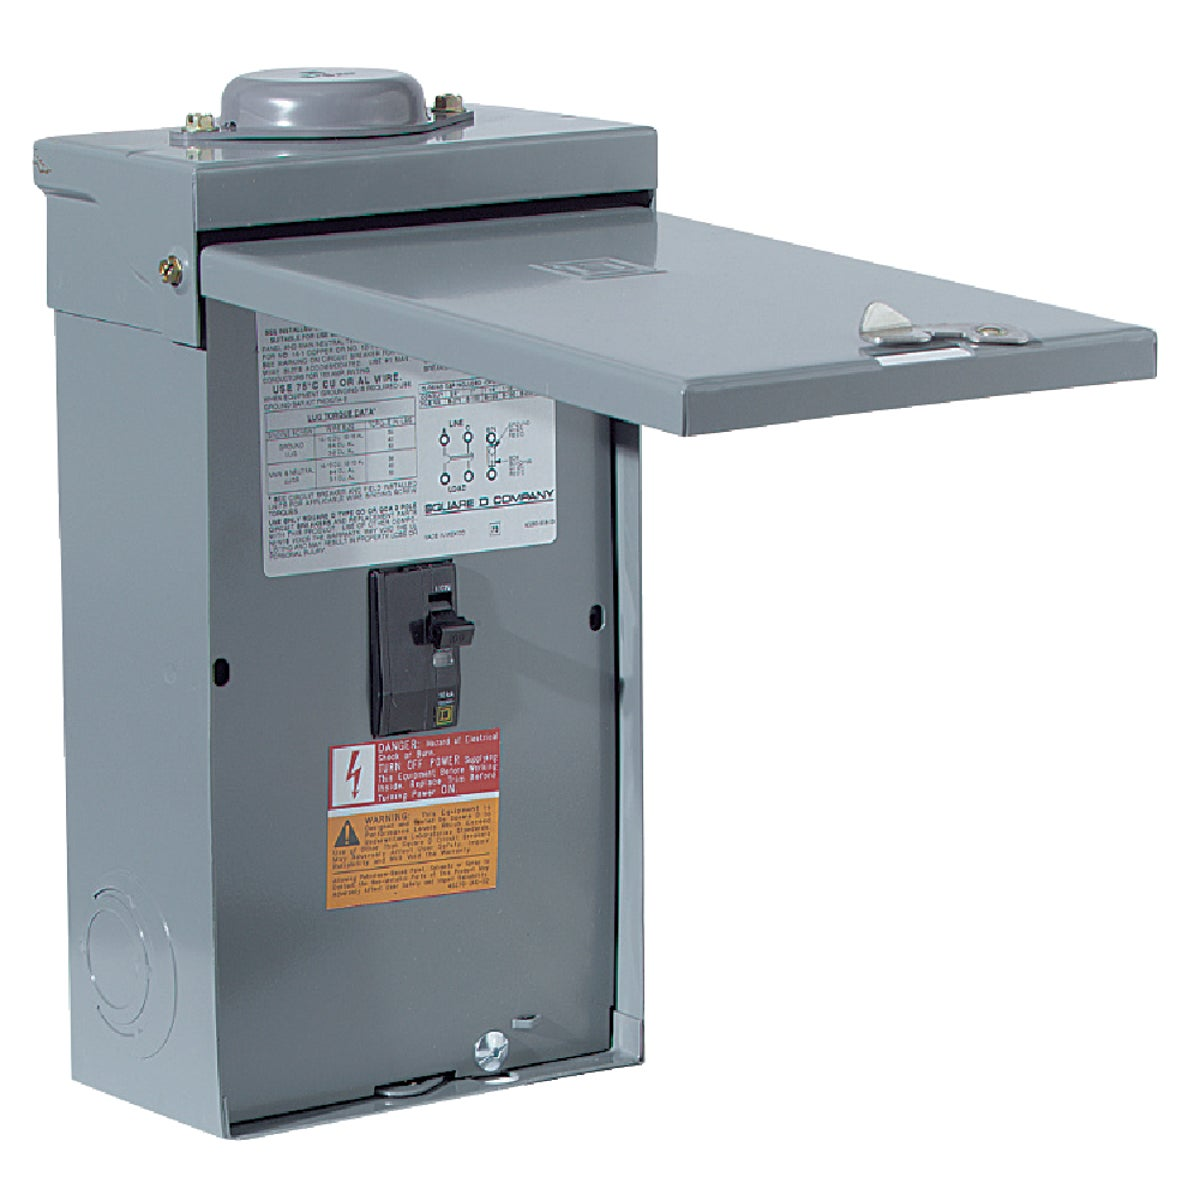 100A ENCLOSED BREAKER - QO2100NRBCP by Square D Co